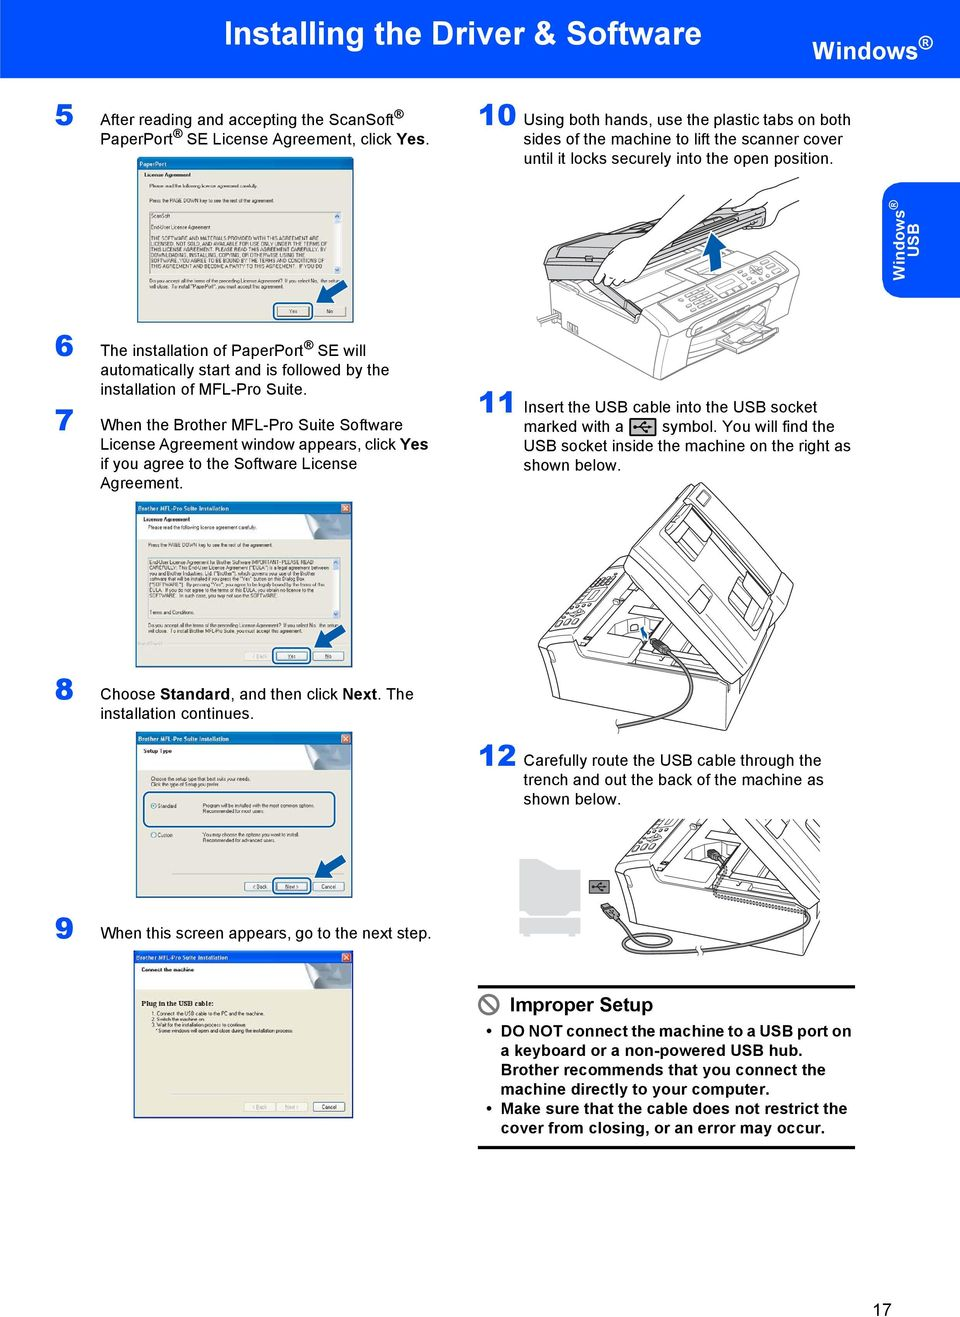 Windows USB 6 The installation of PaperPort SE will automatically start and is followed by the installation of MFL-Pro Suite.